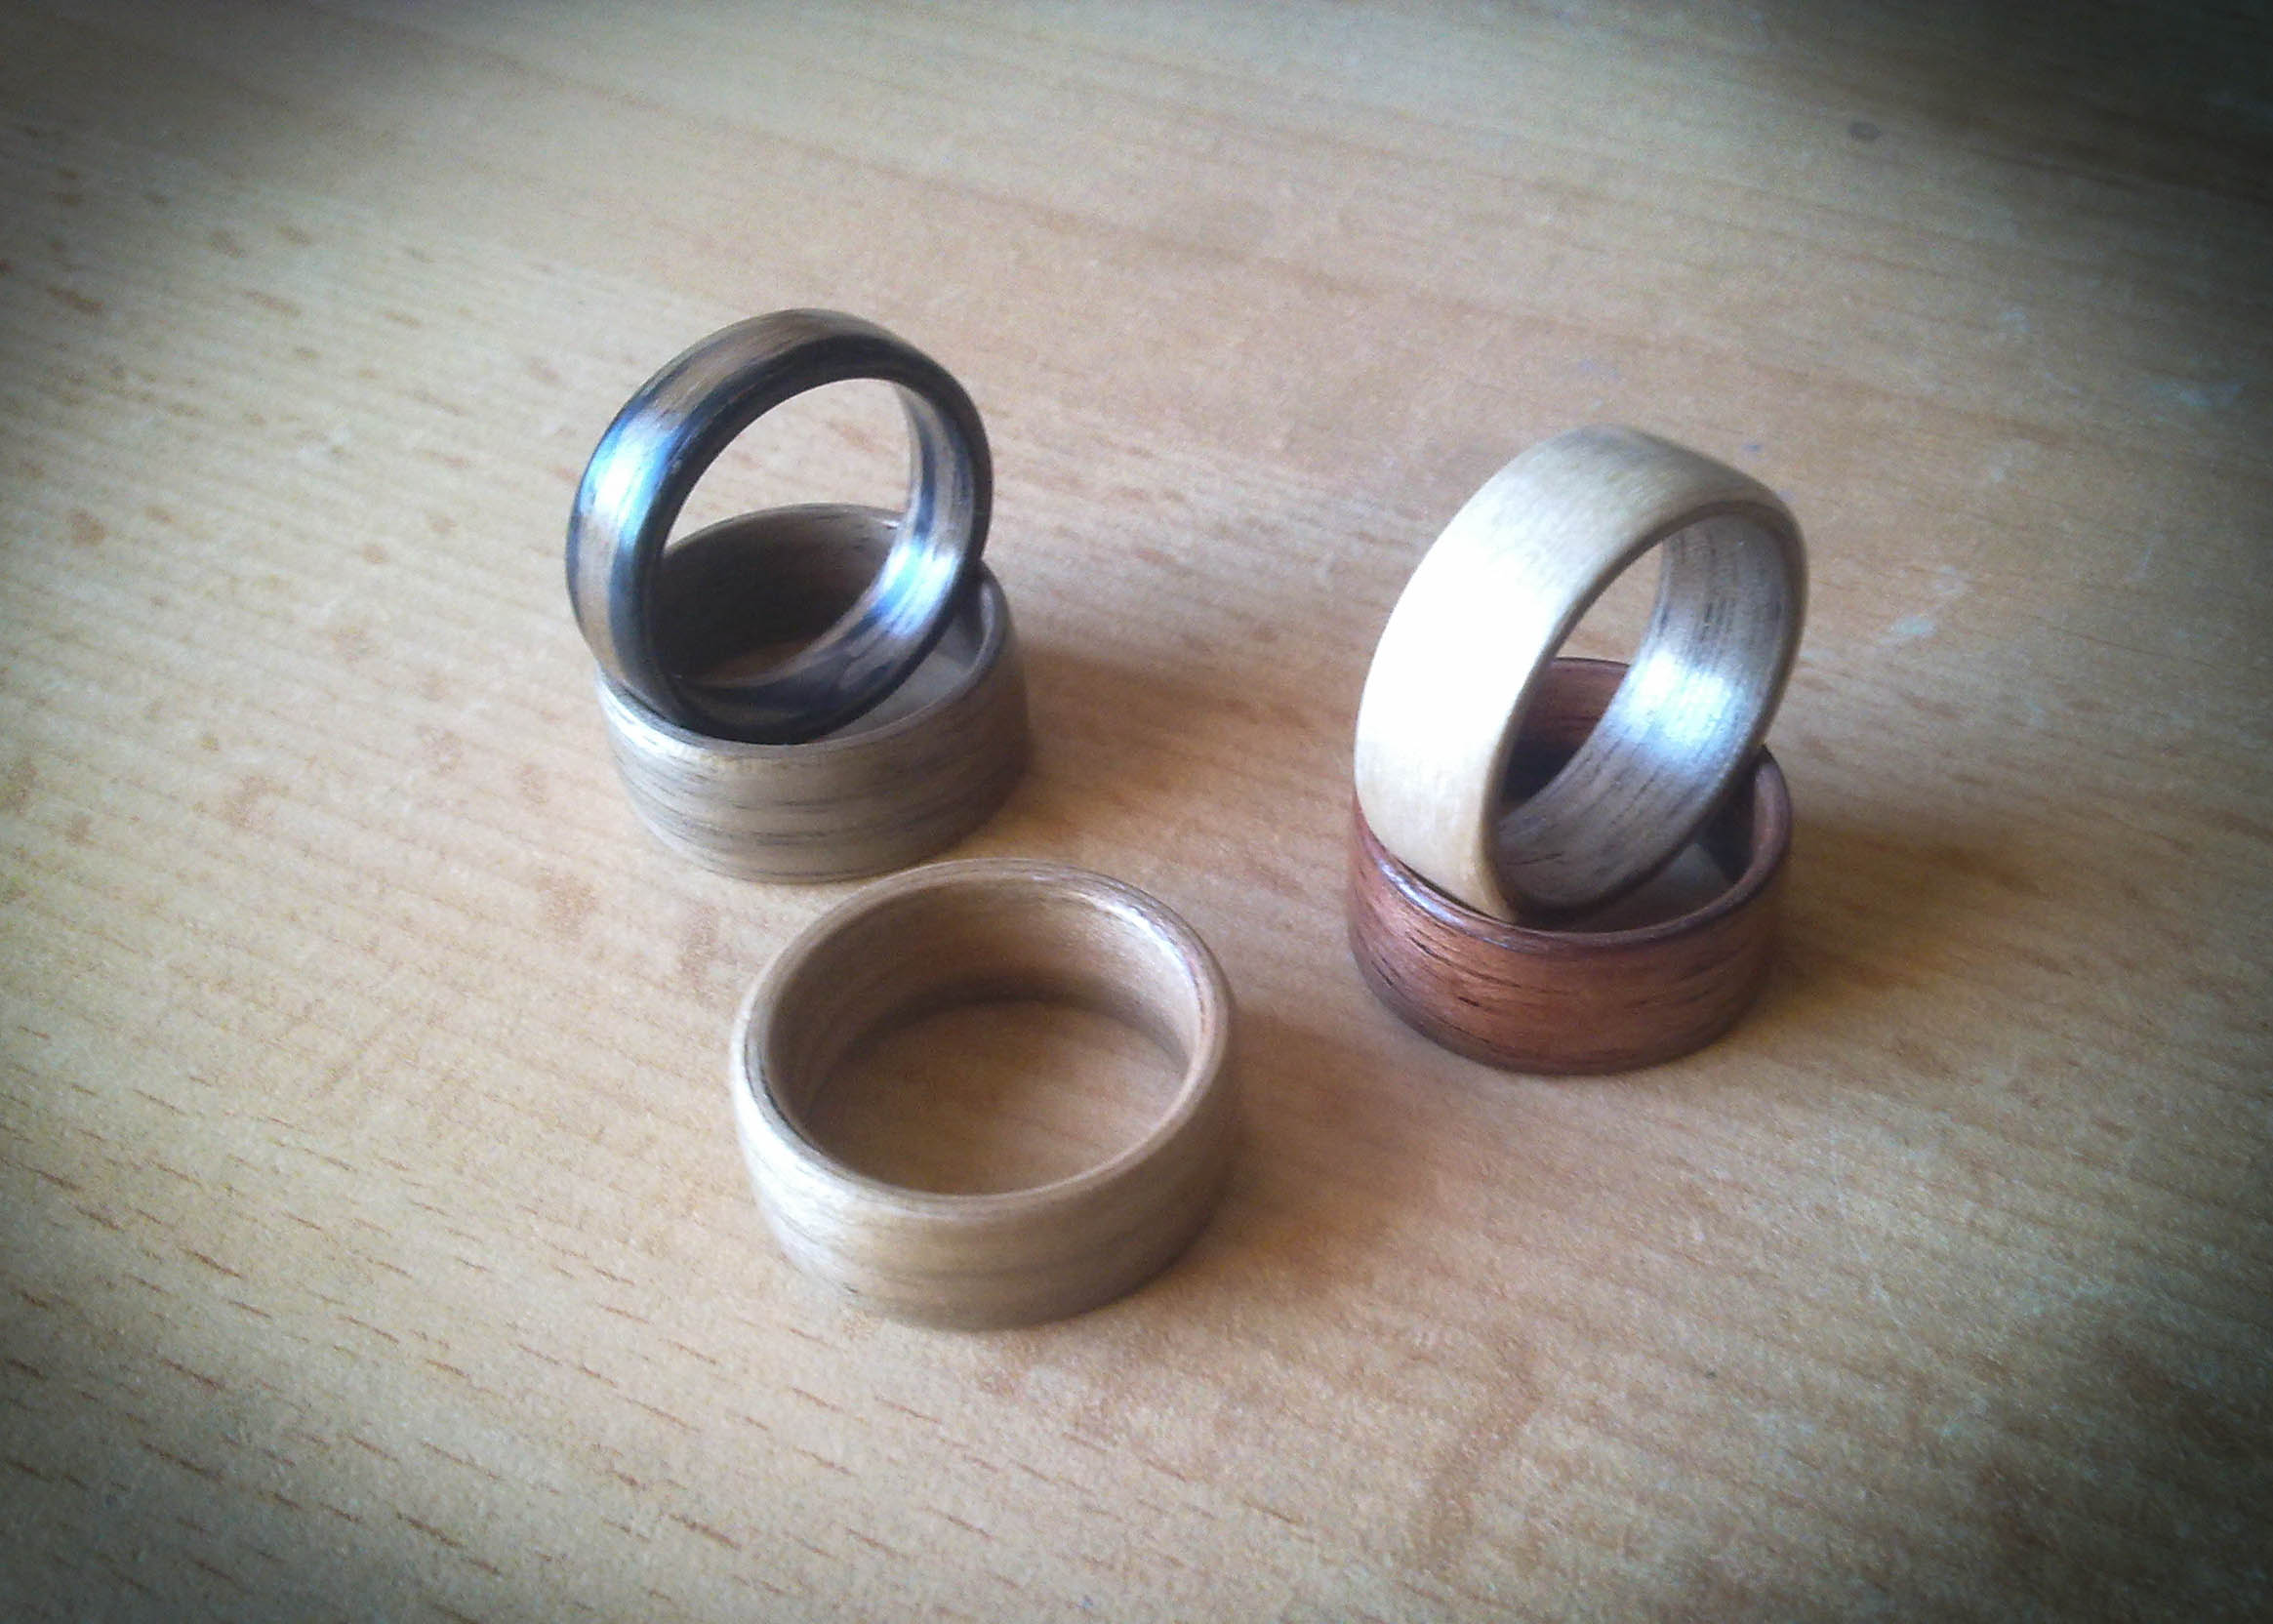 How to make a bentwood ring (wooden ring made from veneer) videos